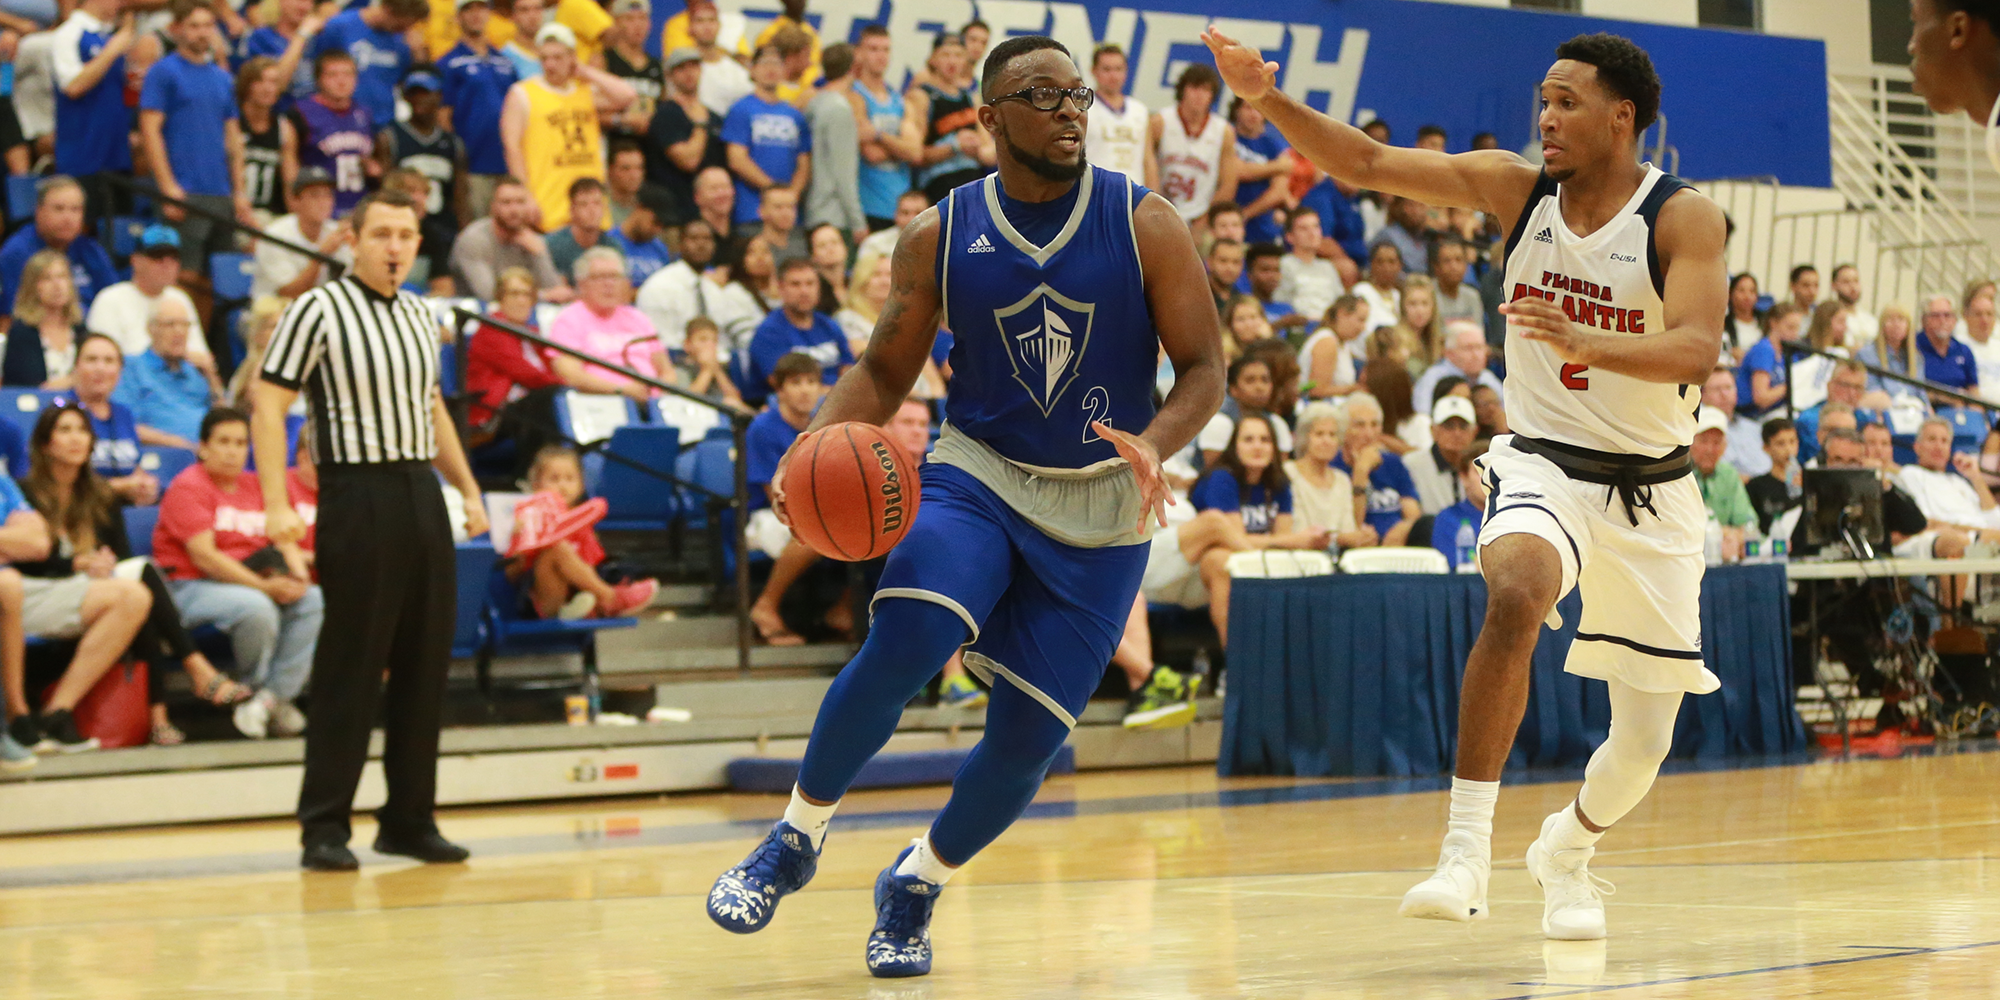 Palmer's Career-Night Lifts Men's Basketball to Victory